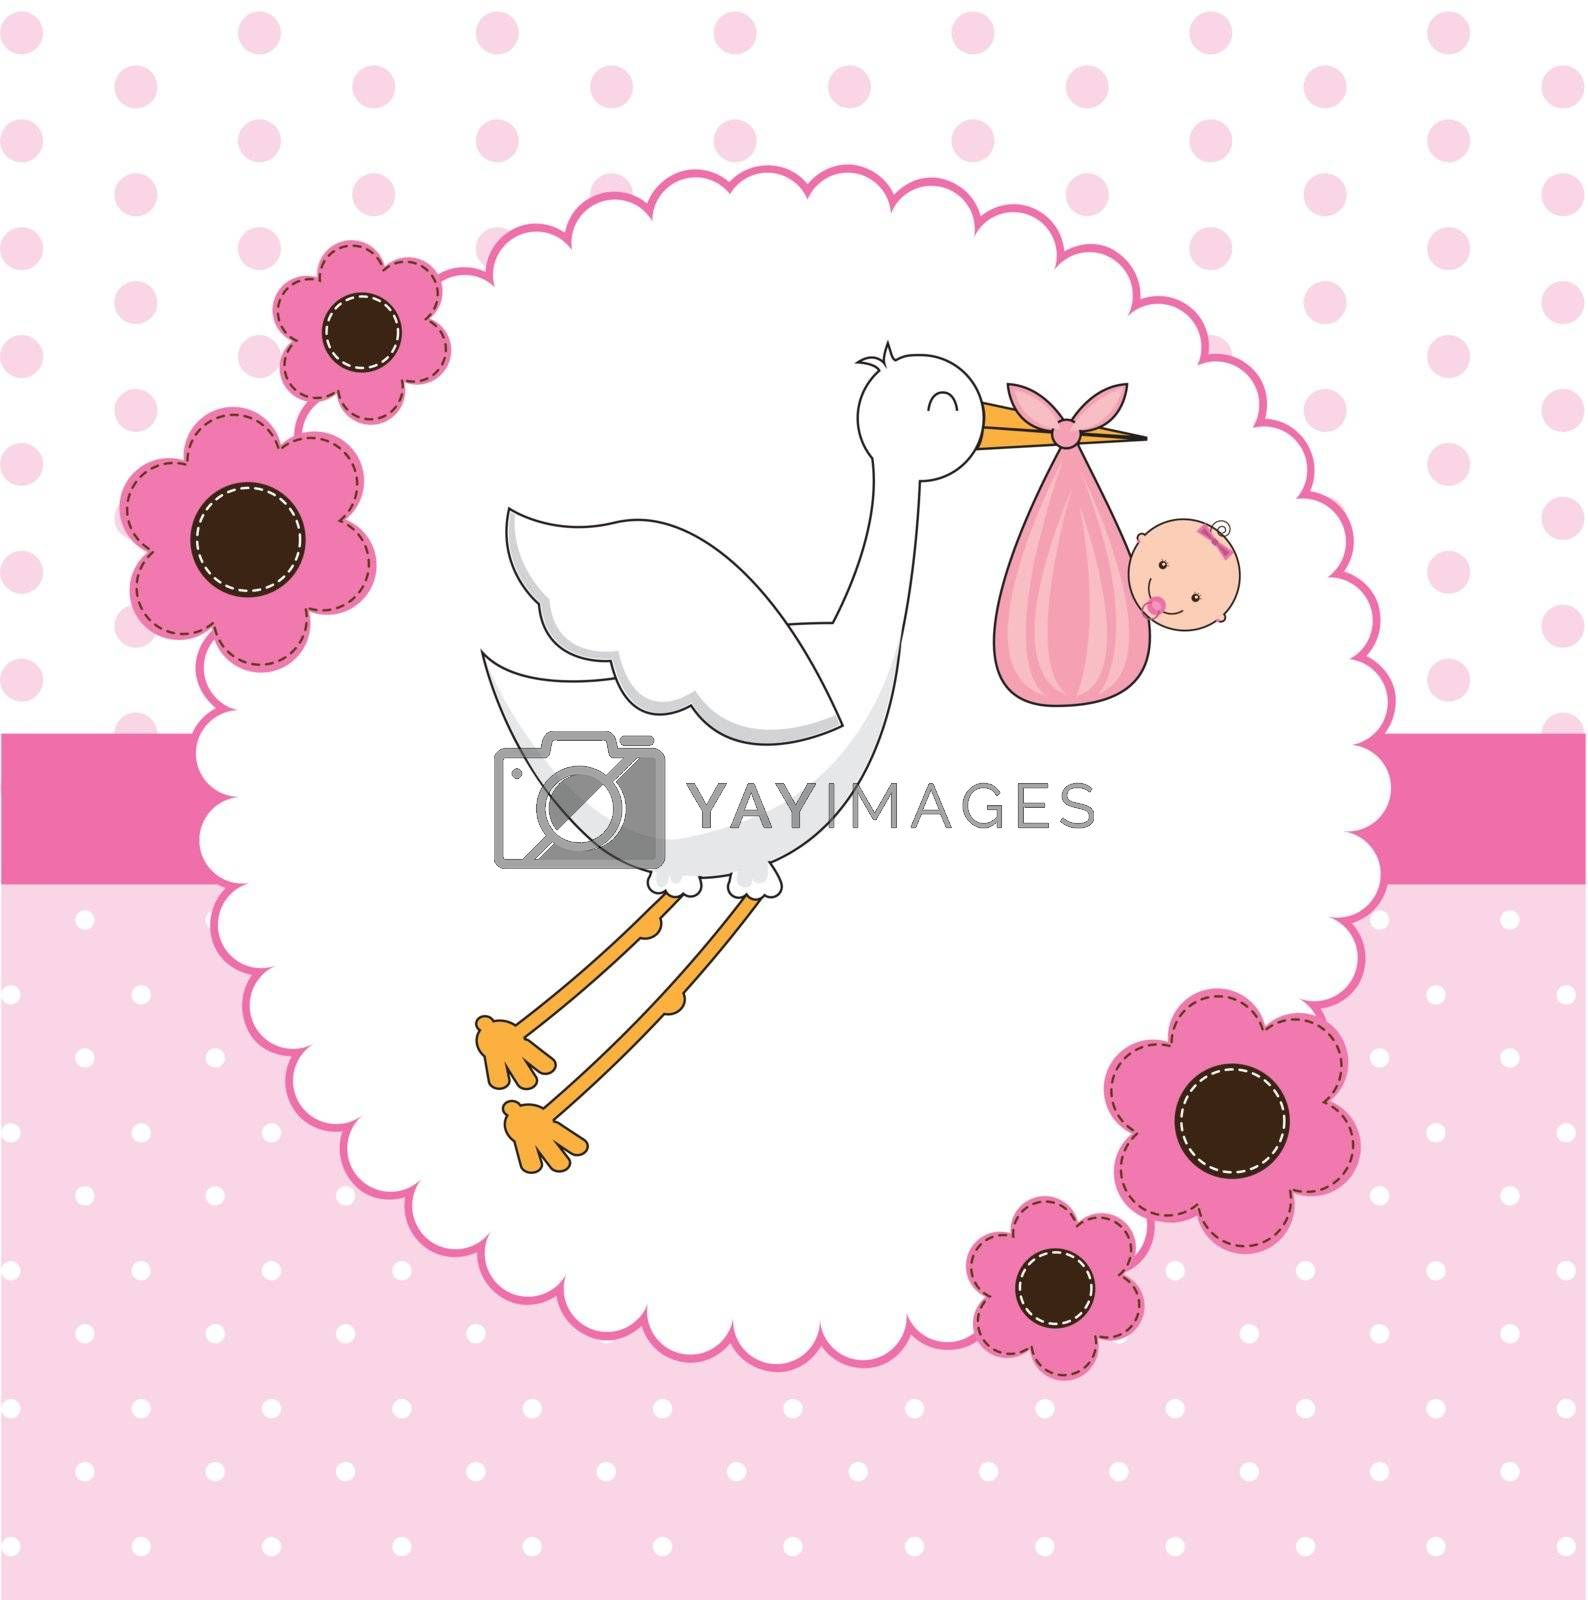 stork with a baby in her pouch vector illustration